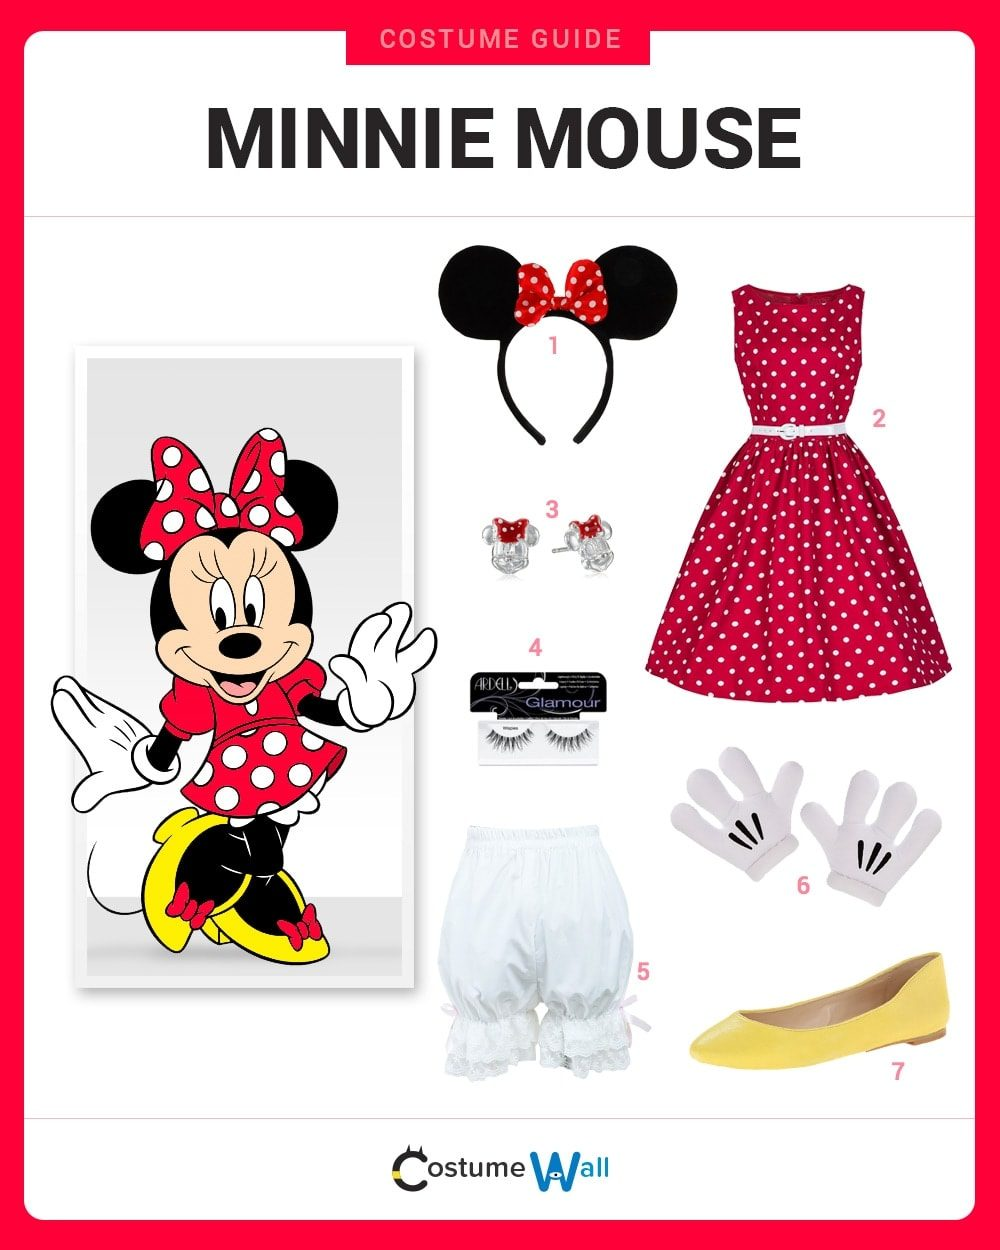 Minnie Mouse Costume Guide